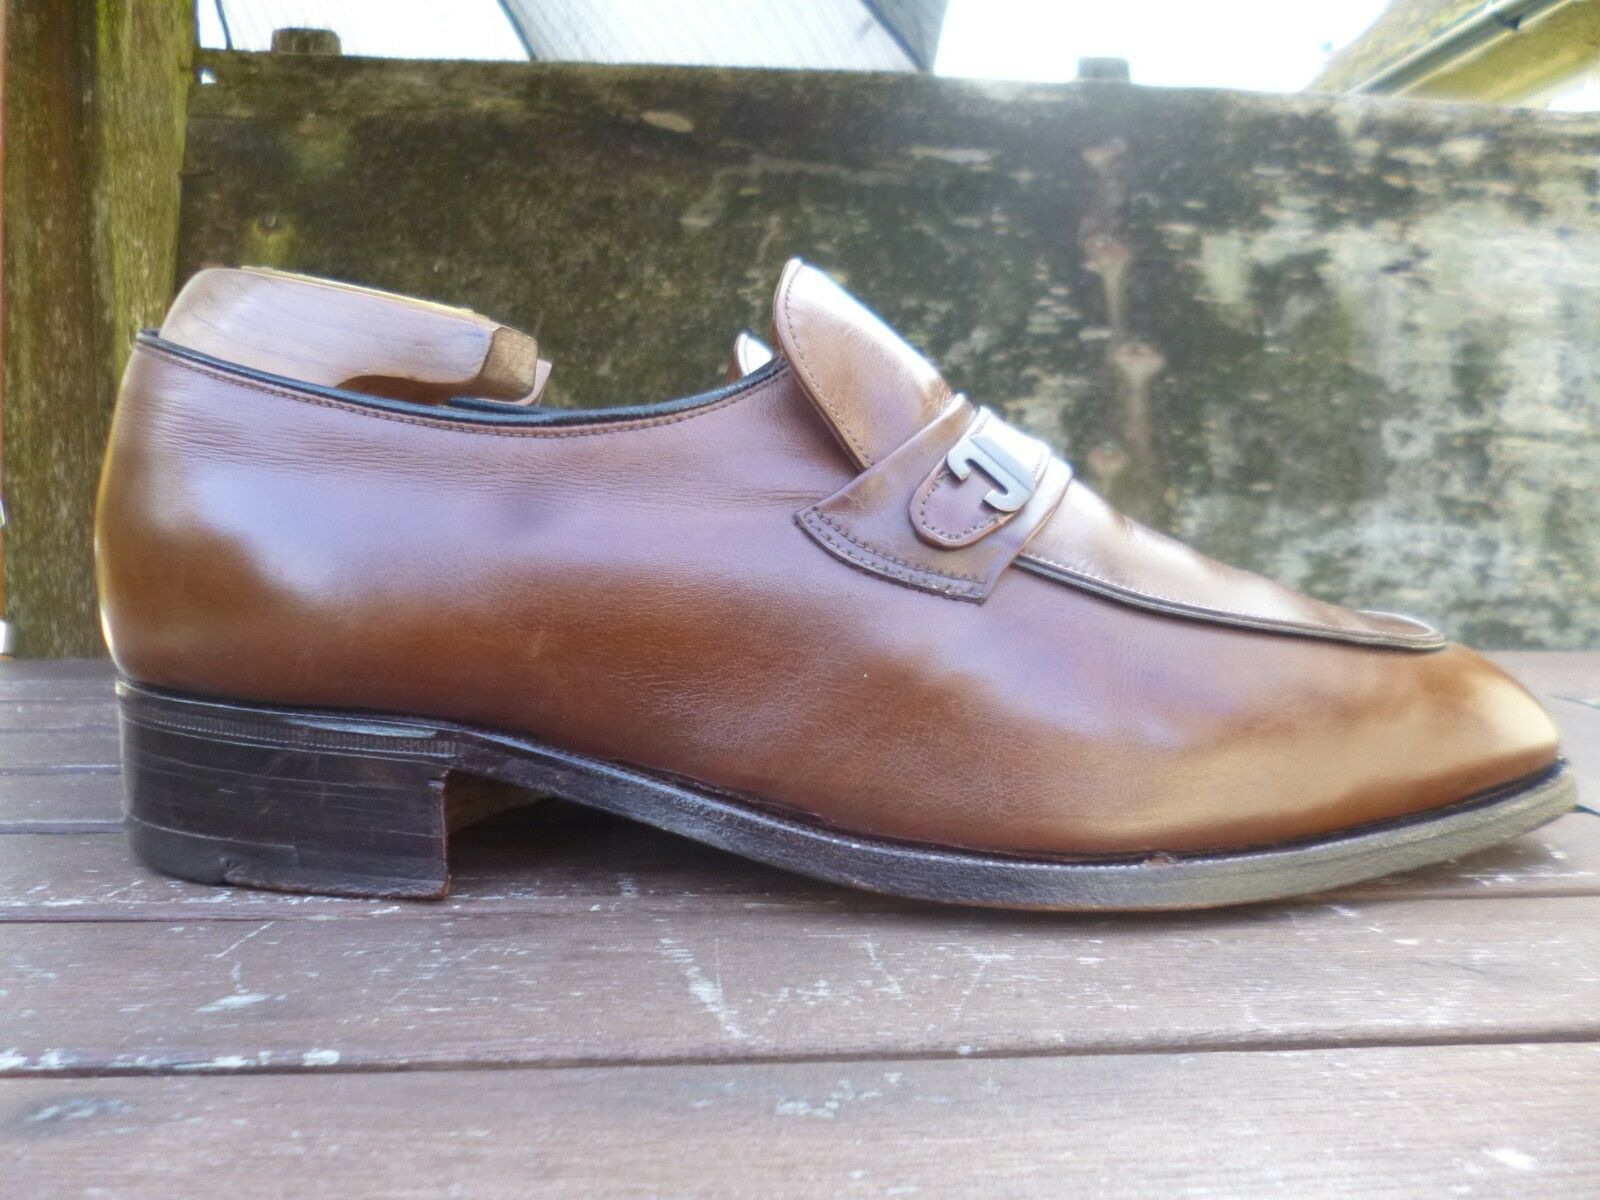 CHURCH VINTAGE LOAFERS – – – braun   TAN - UK 7.5 – INDUS - EXCELLENT CONDITION 356f9f